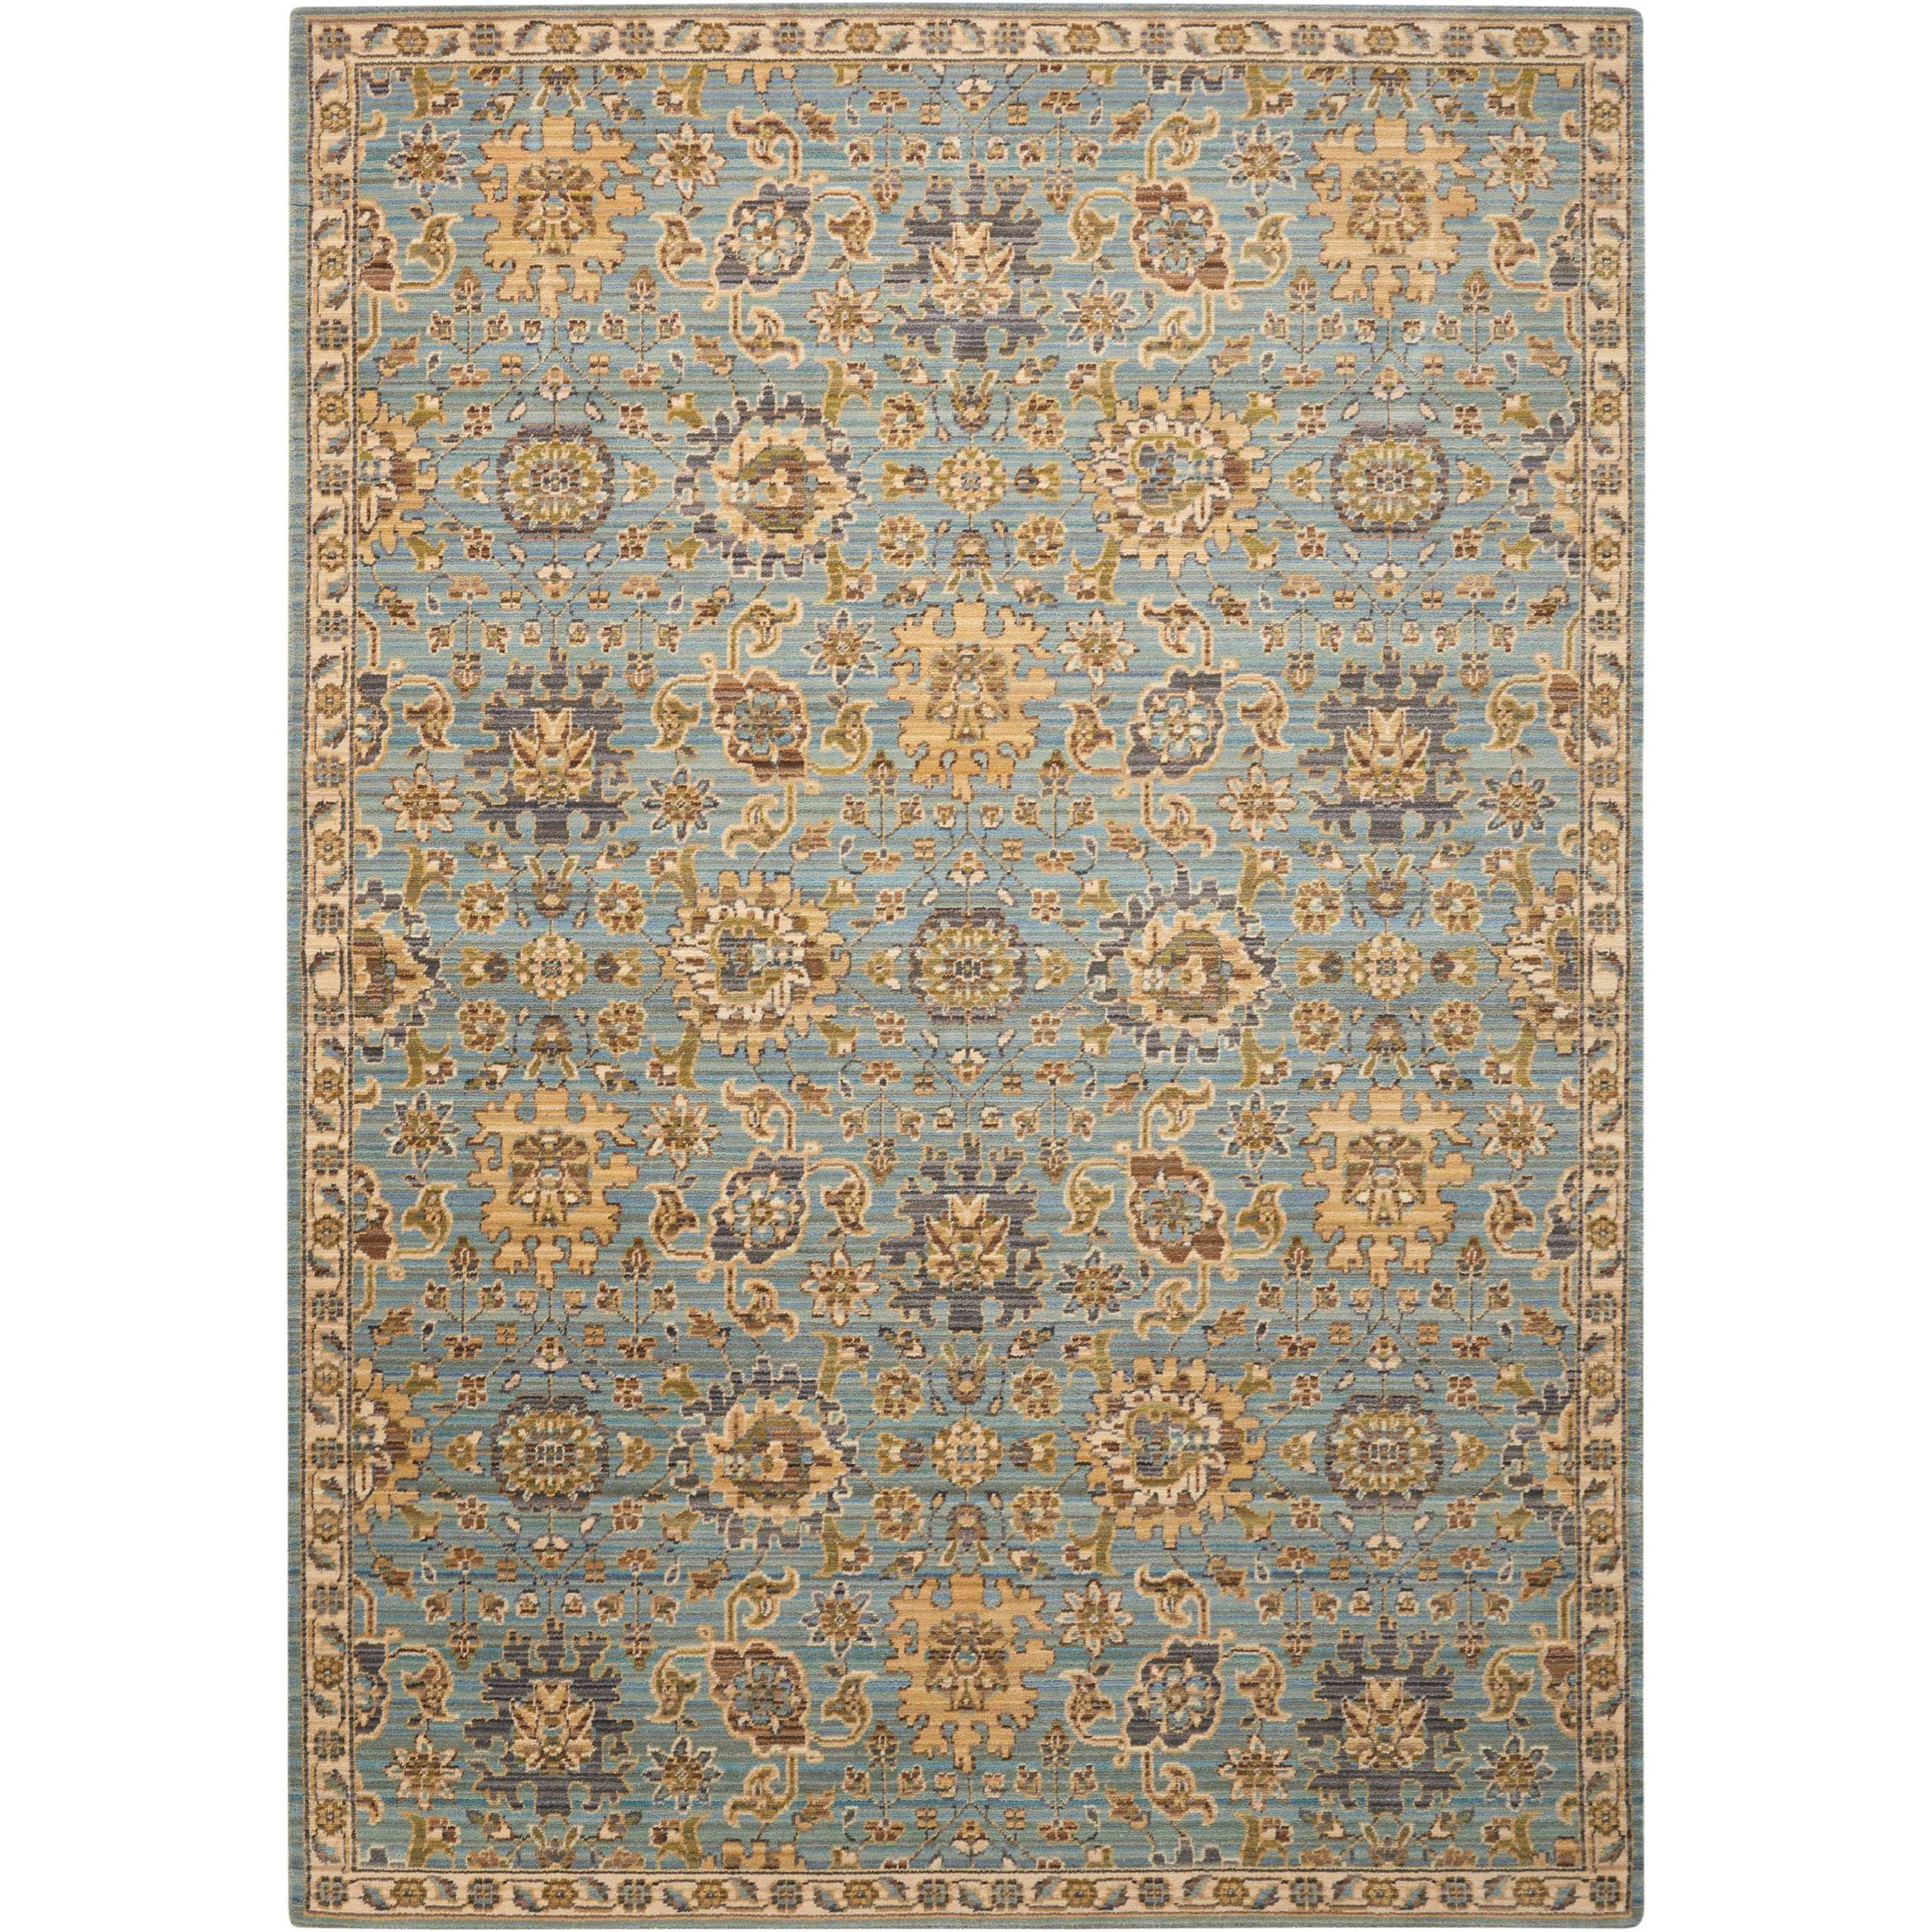 Timeless 12' x 15' Light Blue Rectangle Rug by Nourison at Home Collections Furniture